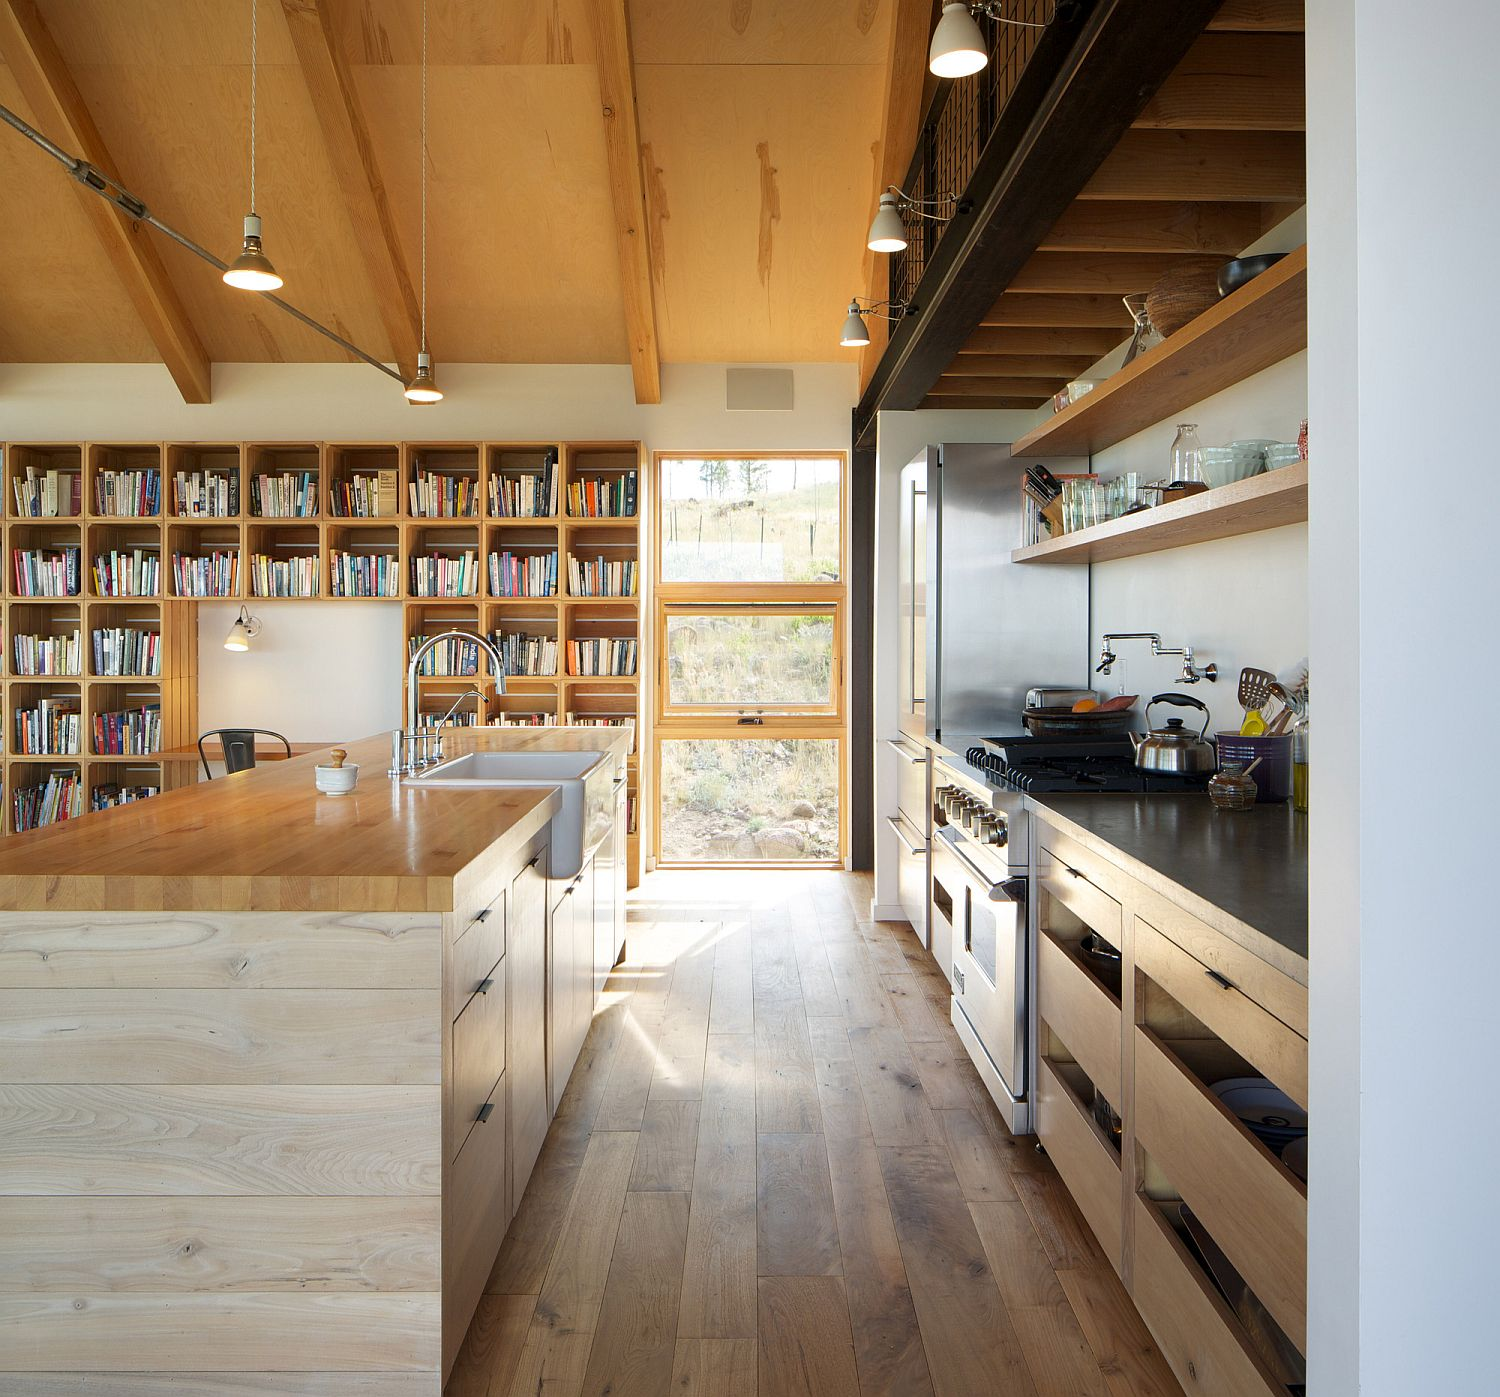 Modern kitchen with open shelves and a bookshelf in the backdrop